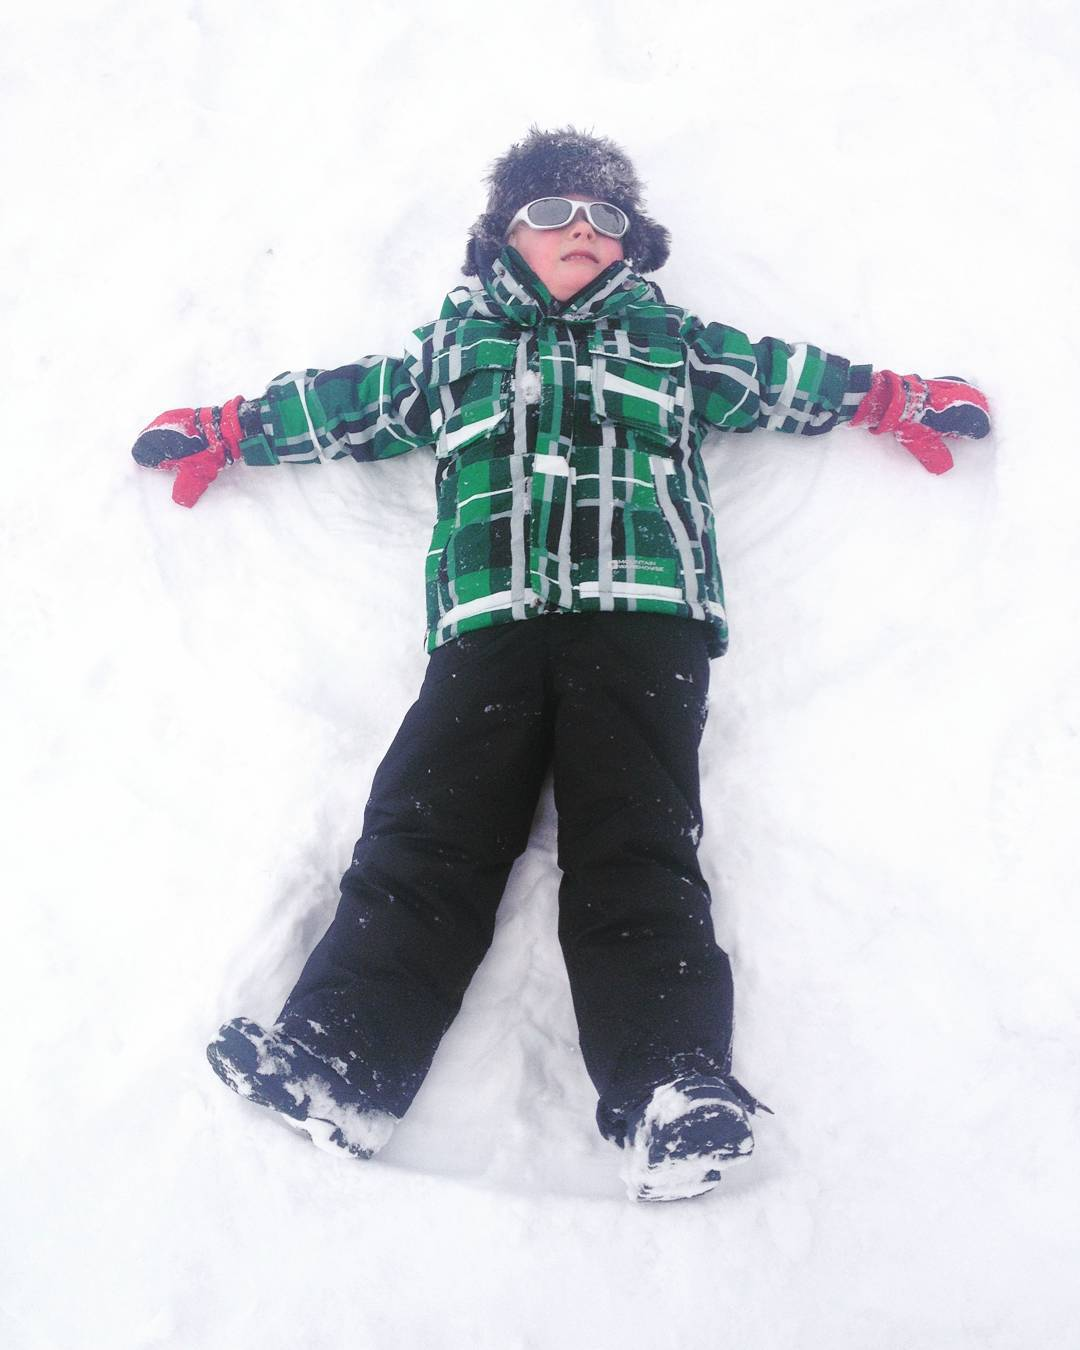 Snow angels!!  We love playing in the snow andhellip